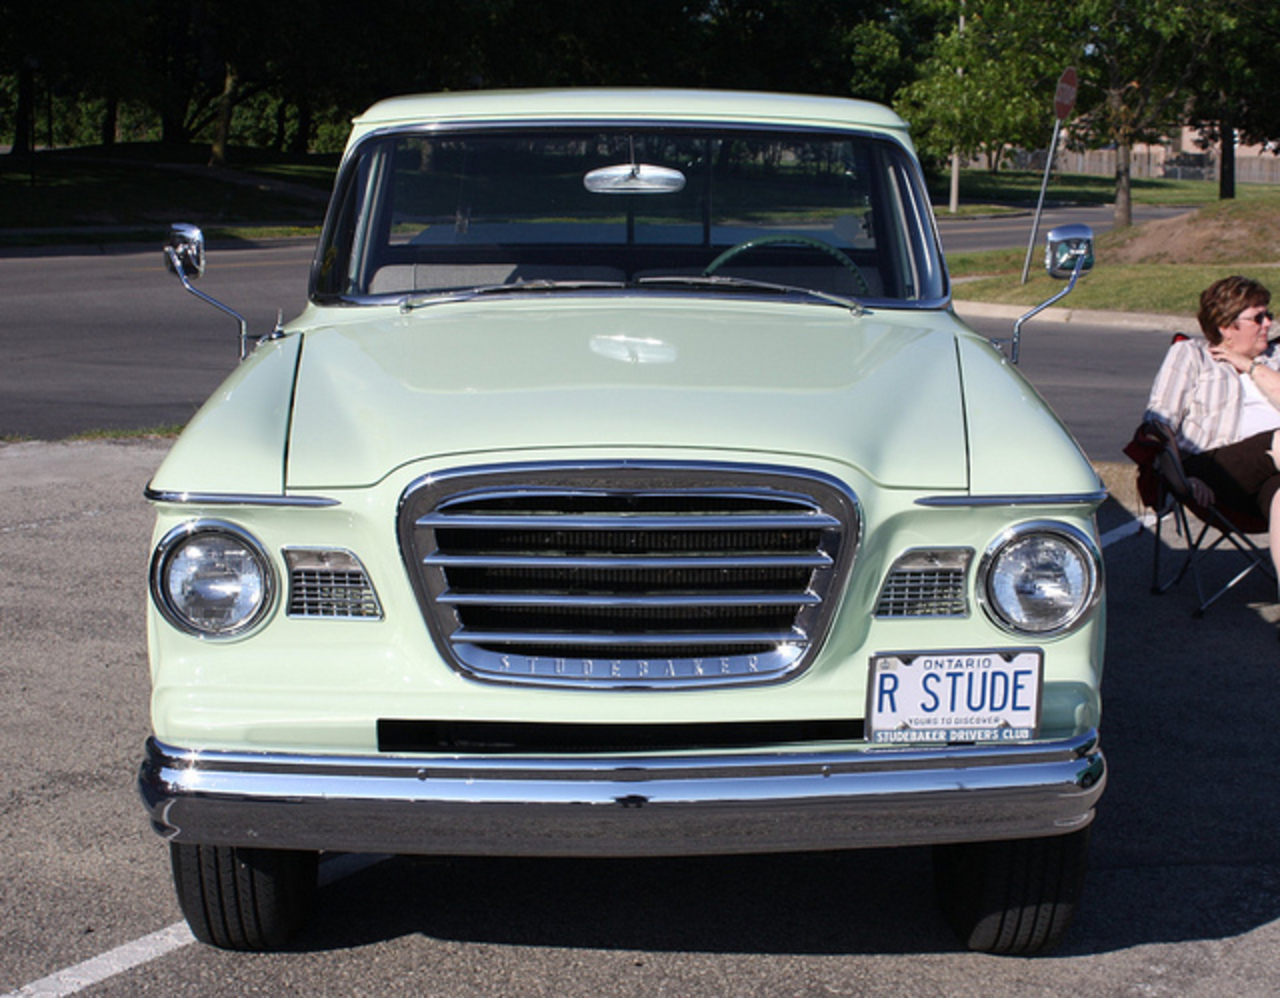 1960 Studebaker Champ pickup | Flickr - Photo Sharing!